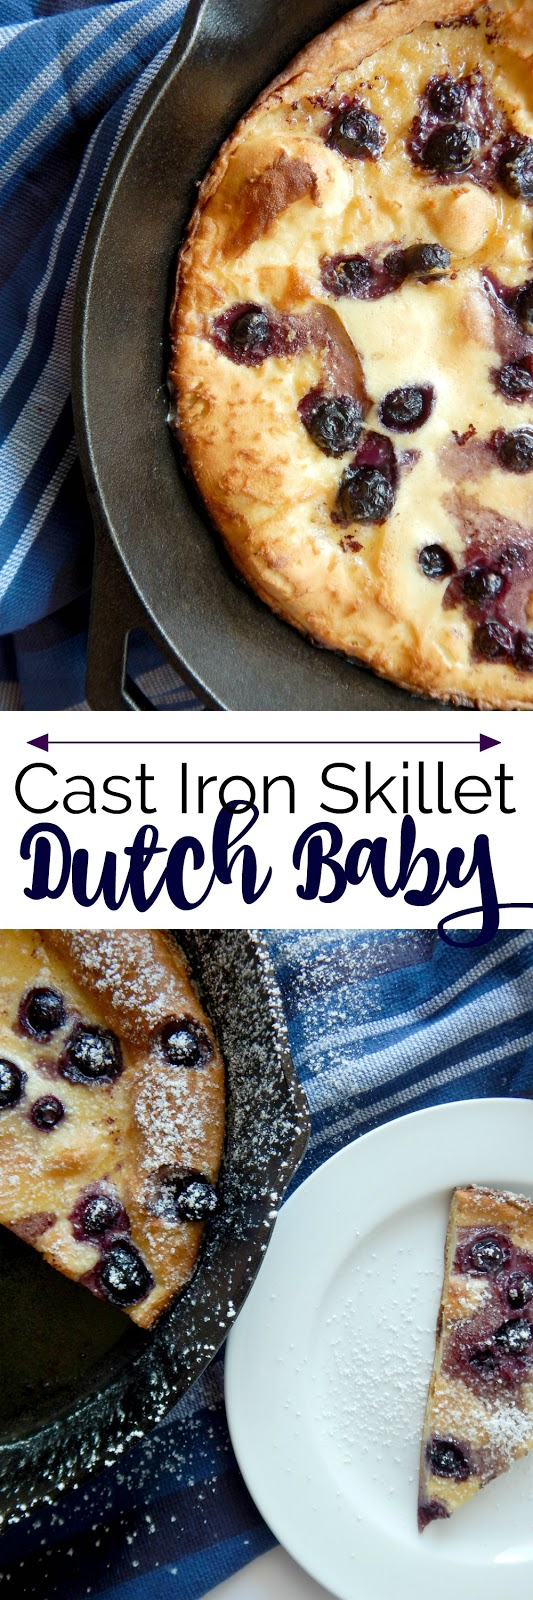 Cast Iron Skillet Dutch Baby...this delicate, thin, tender dutch baby pancake has a secret dairy ingredient!  Pull this out of the oven, dust with powdered sugar and dig in!  Start to finish done in 30 minutes. Perfect for breakfast, brunch, even dessert! #KalonaSuperNatural